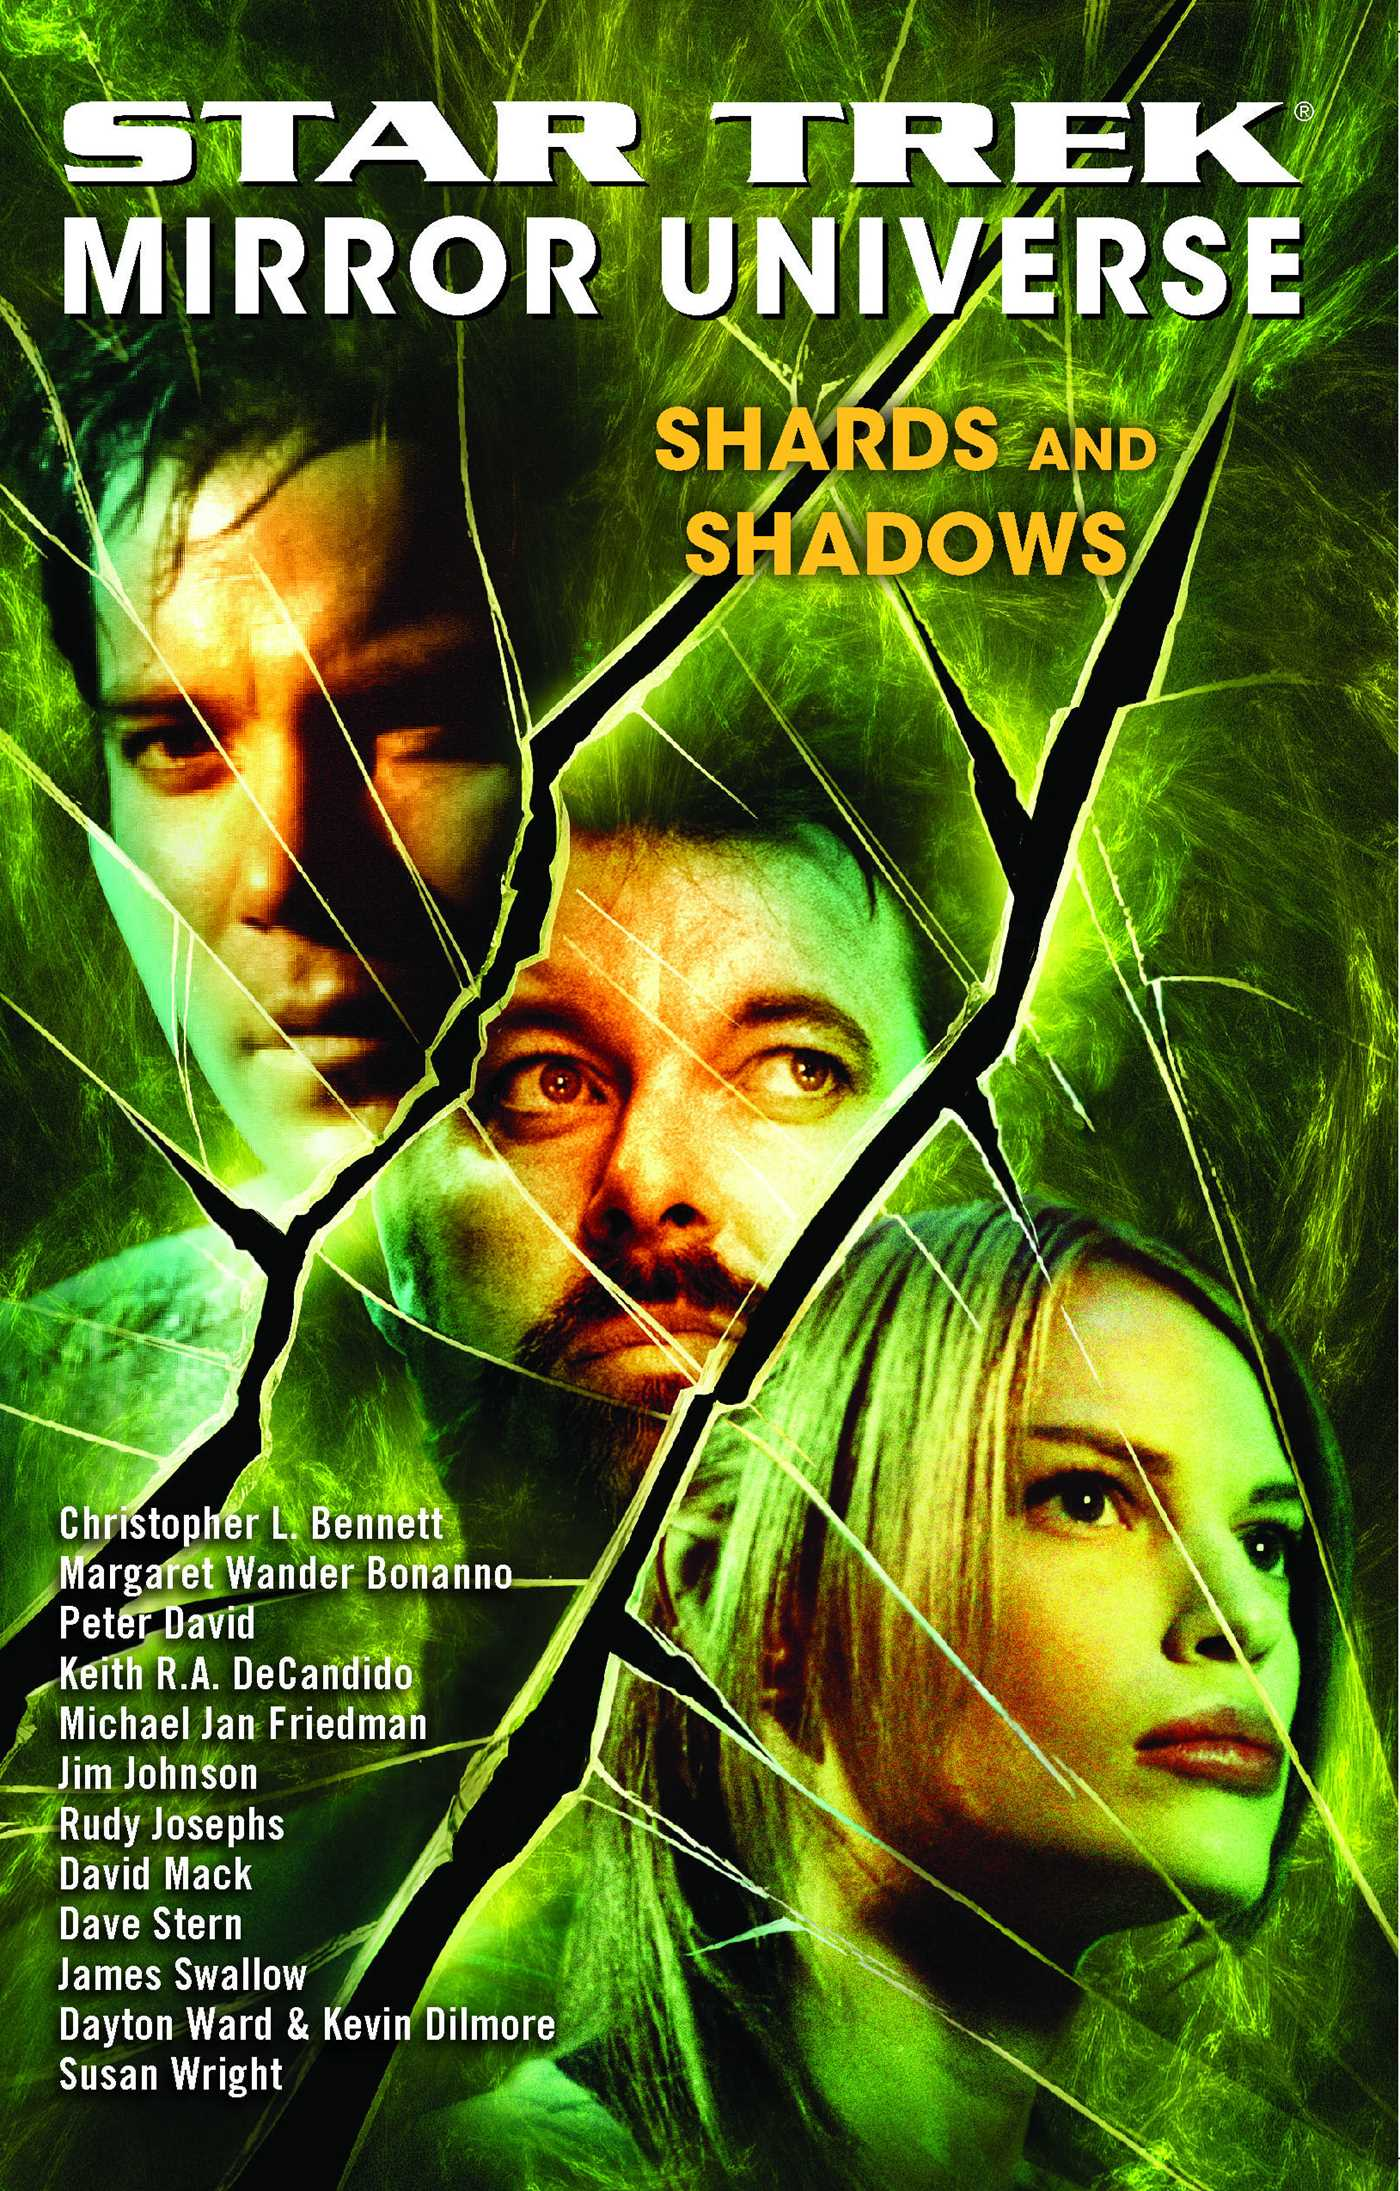 Star trek mirror universe shards and shadows 9781416566205 hr